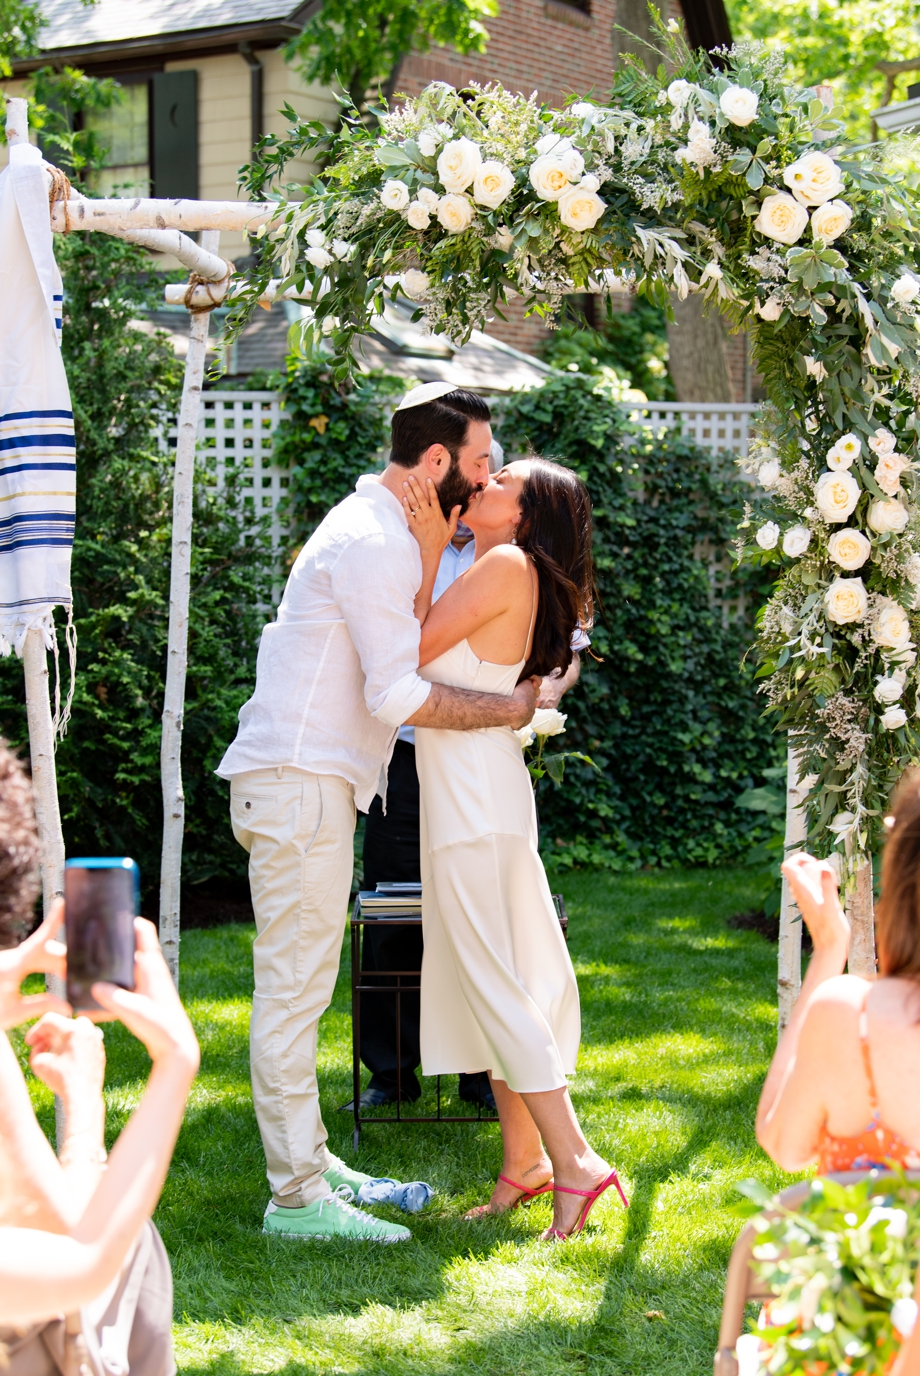 the first kiss during ceremony